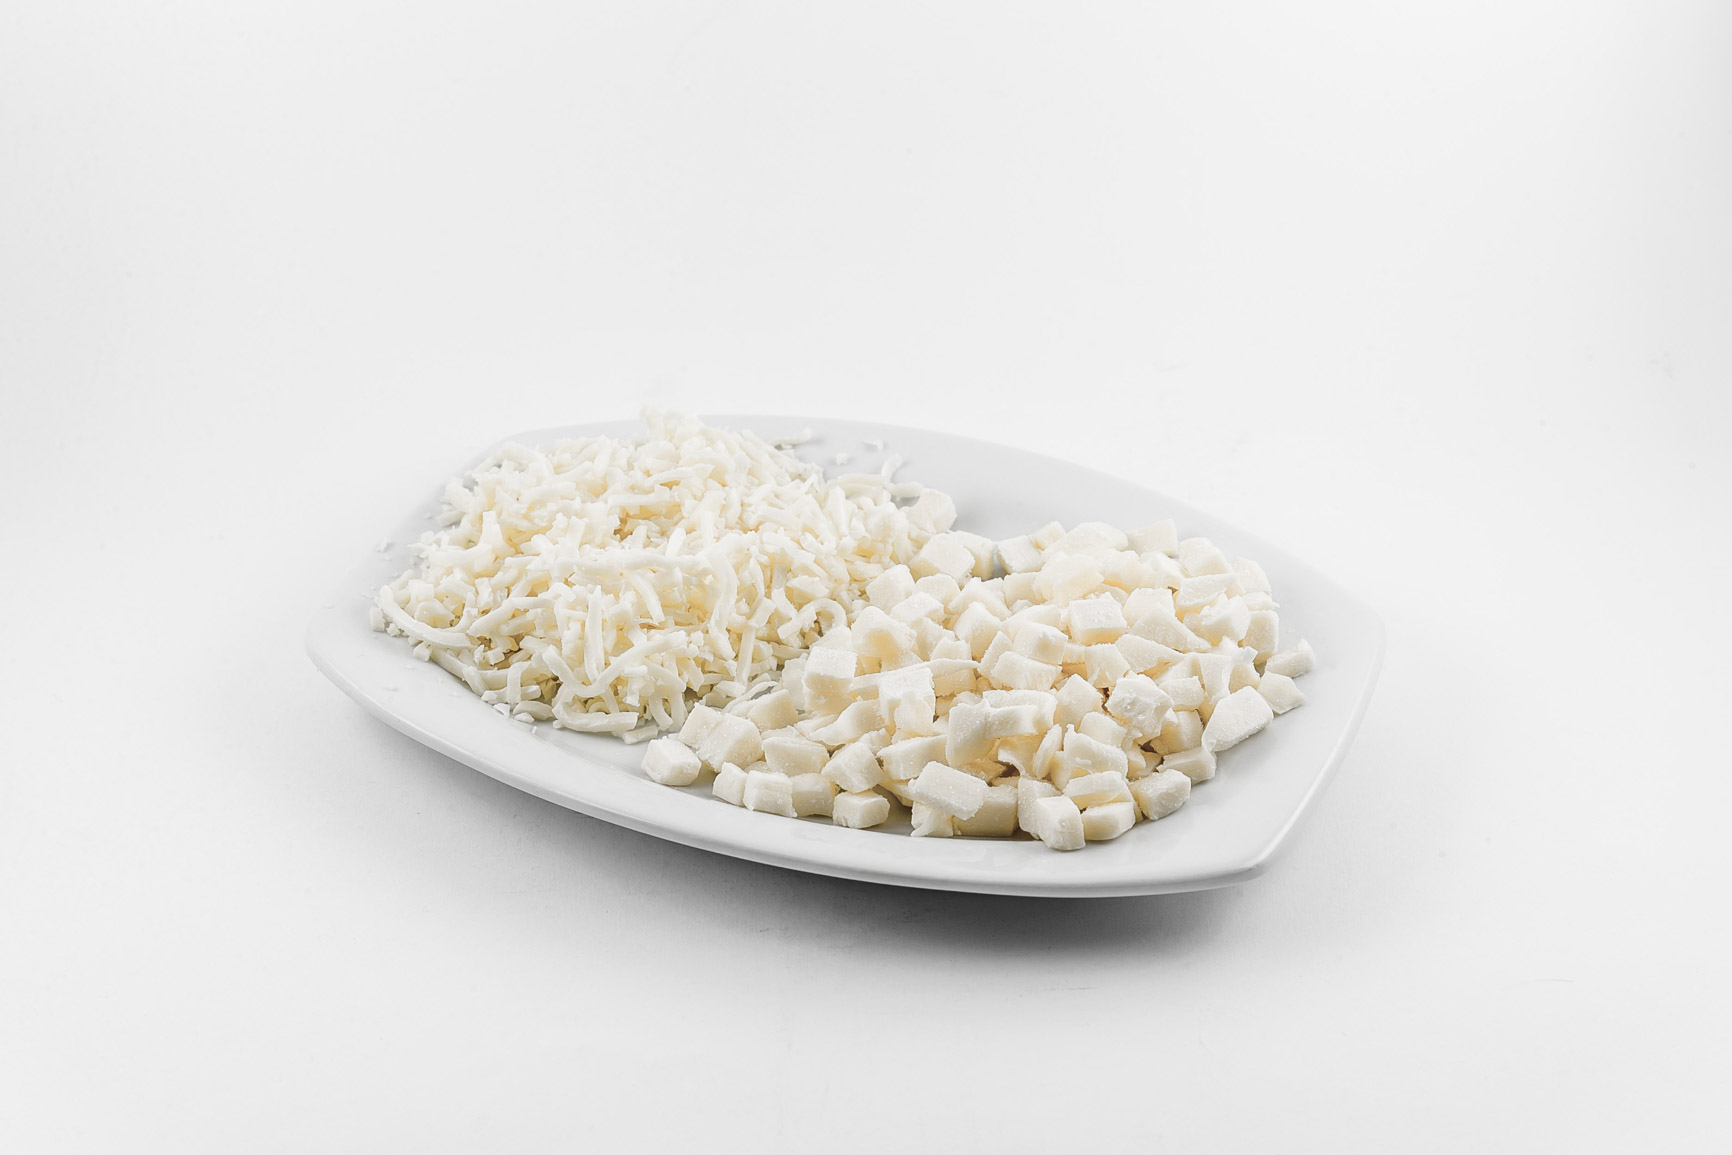 FROZEN DICED/JULIENNE MOZZARELLA